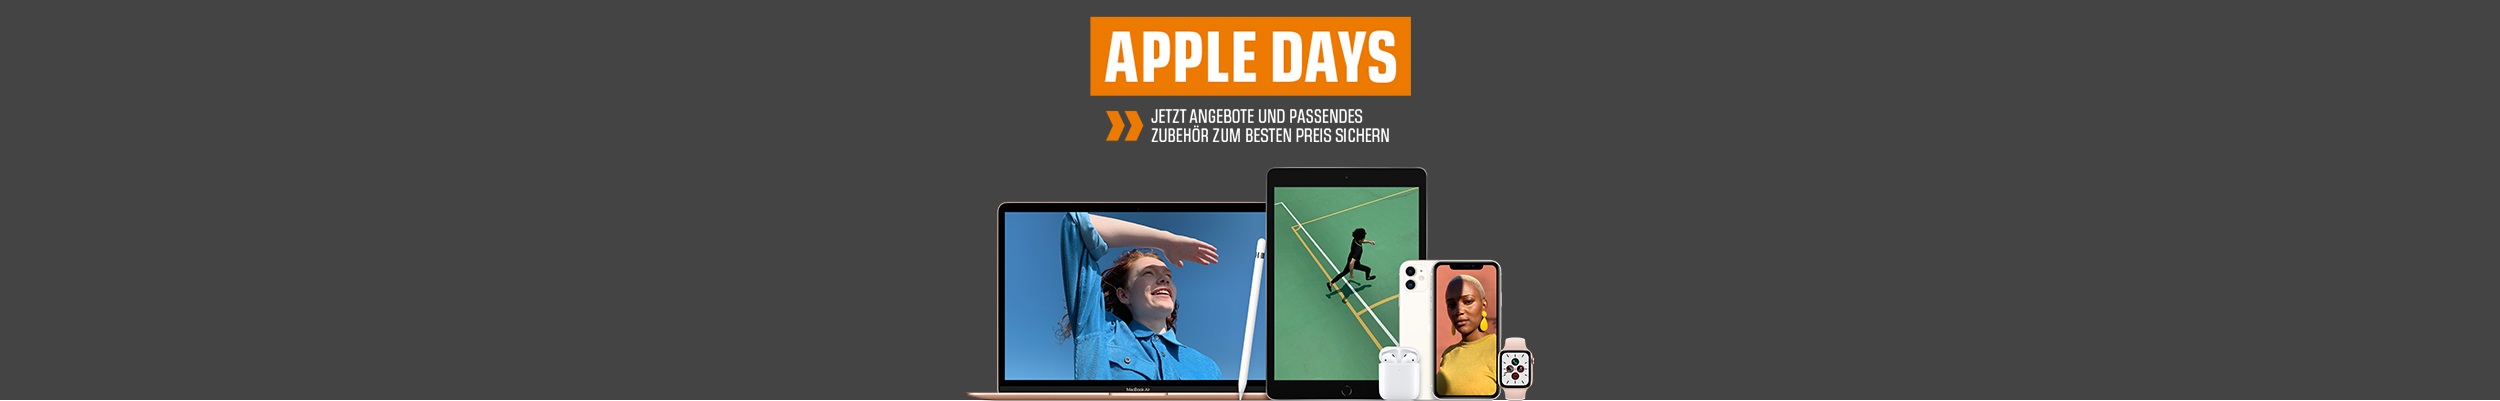 apple days header